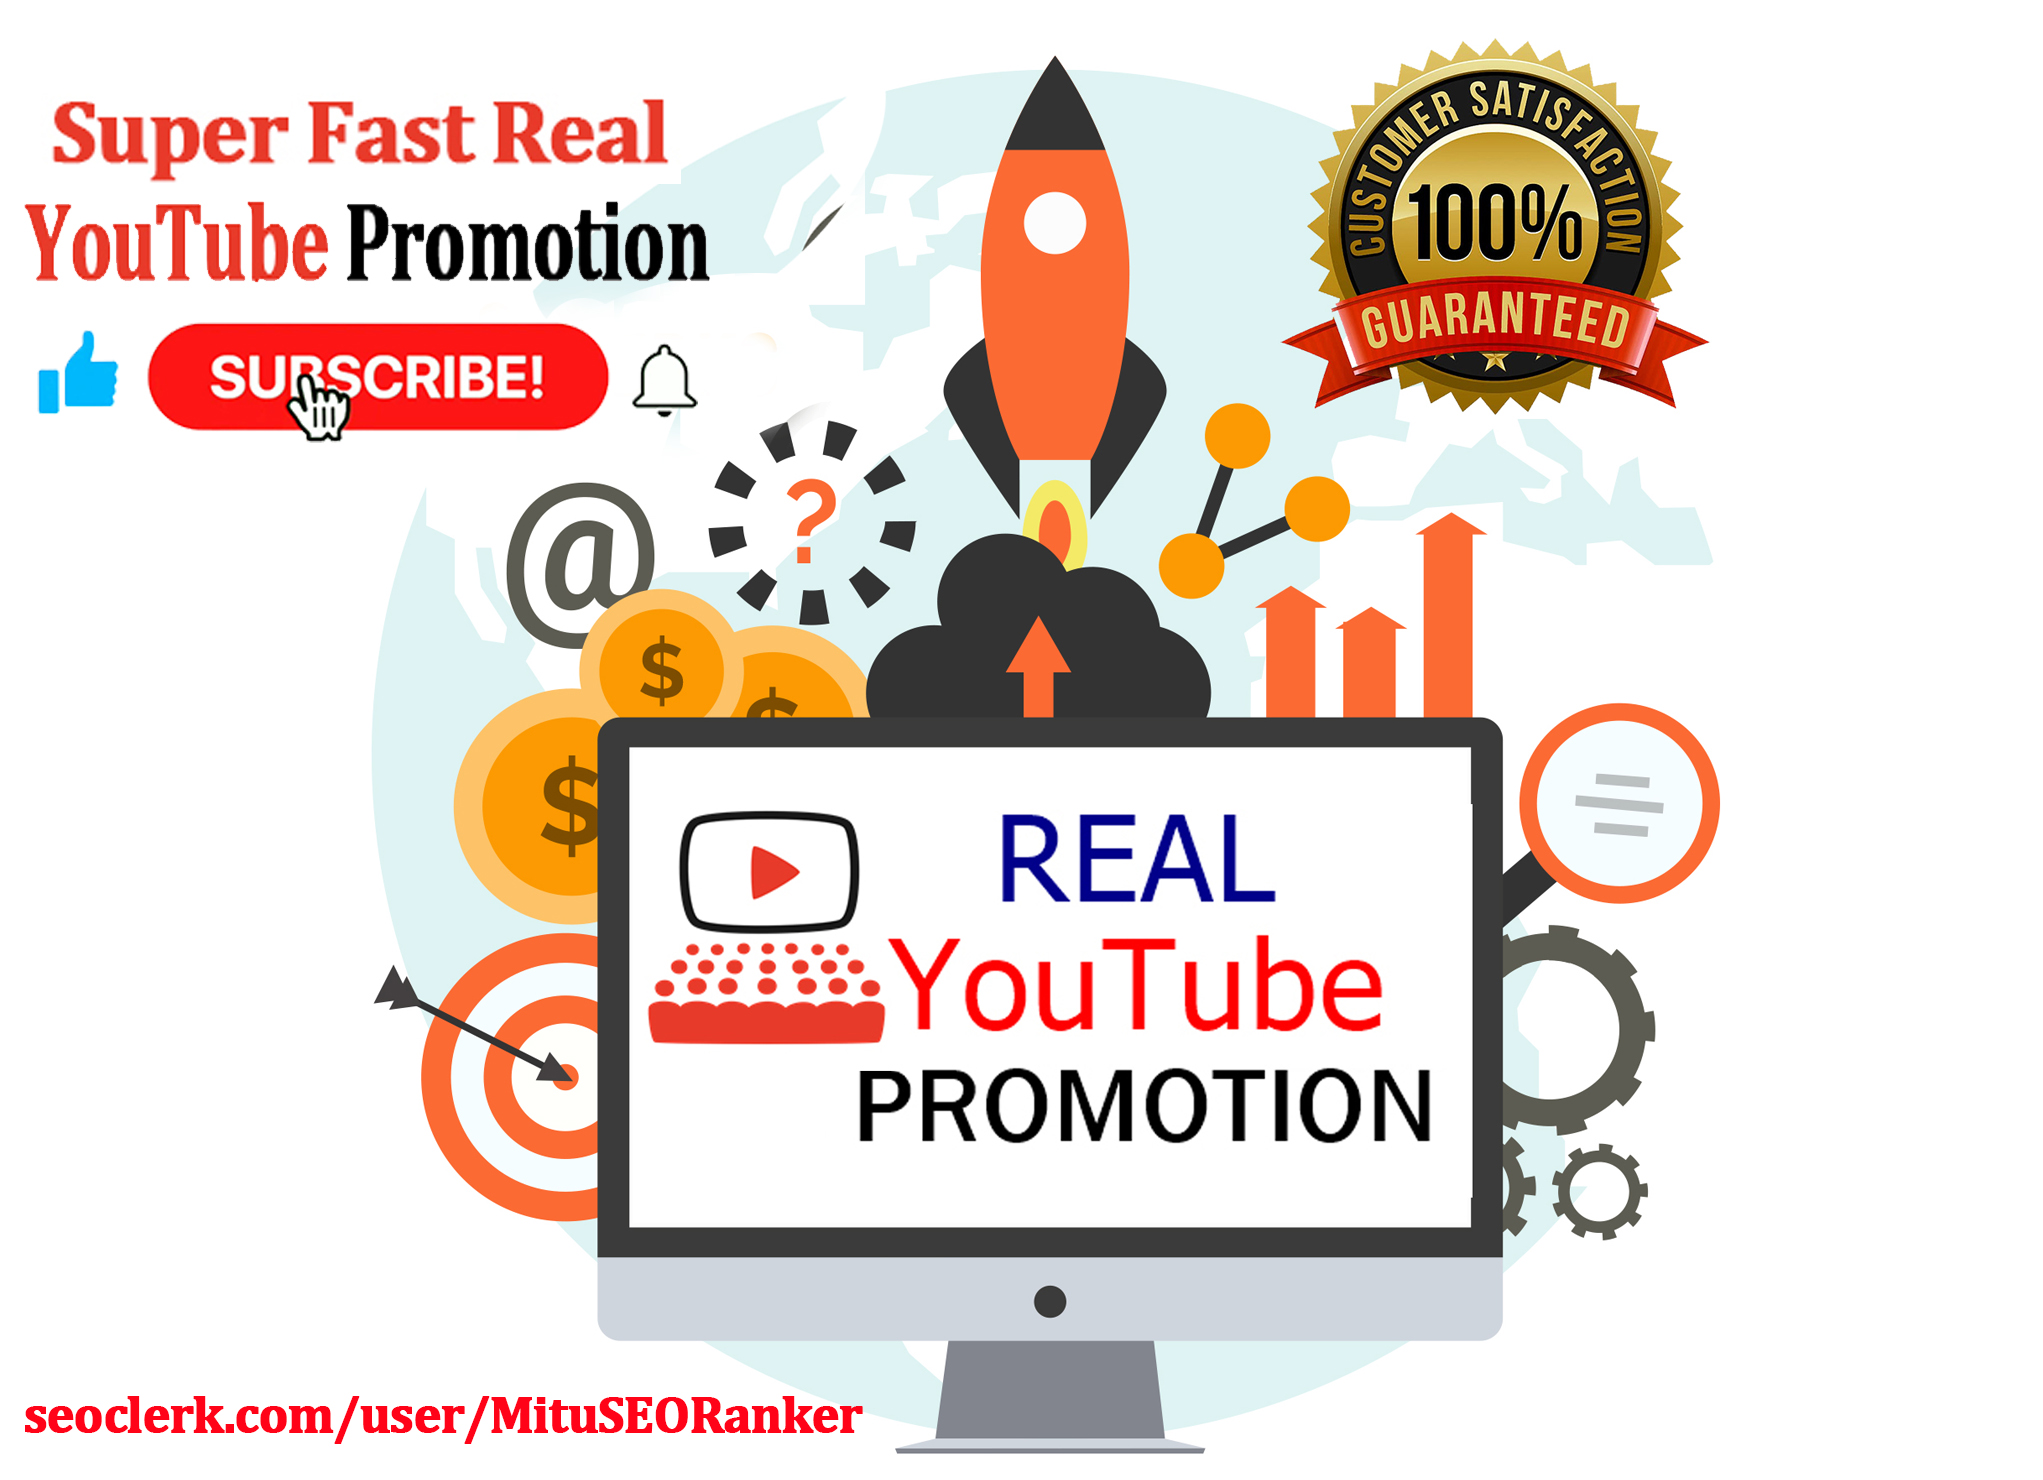 Super Fast Real YouTube Promotion with extra bonus